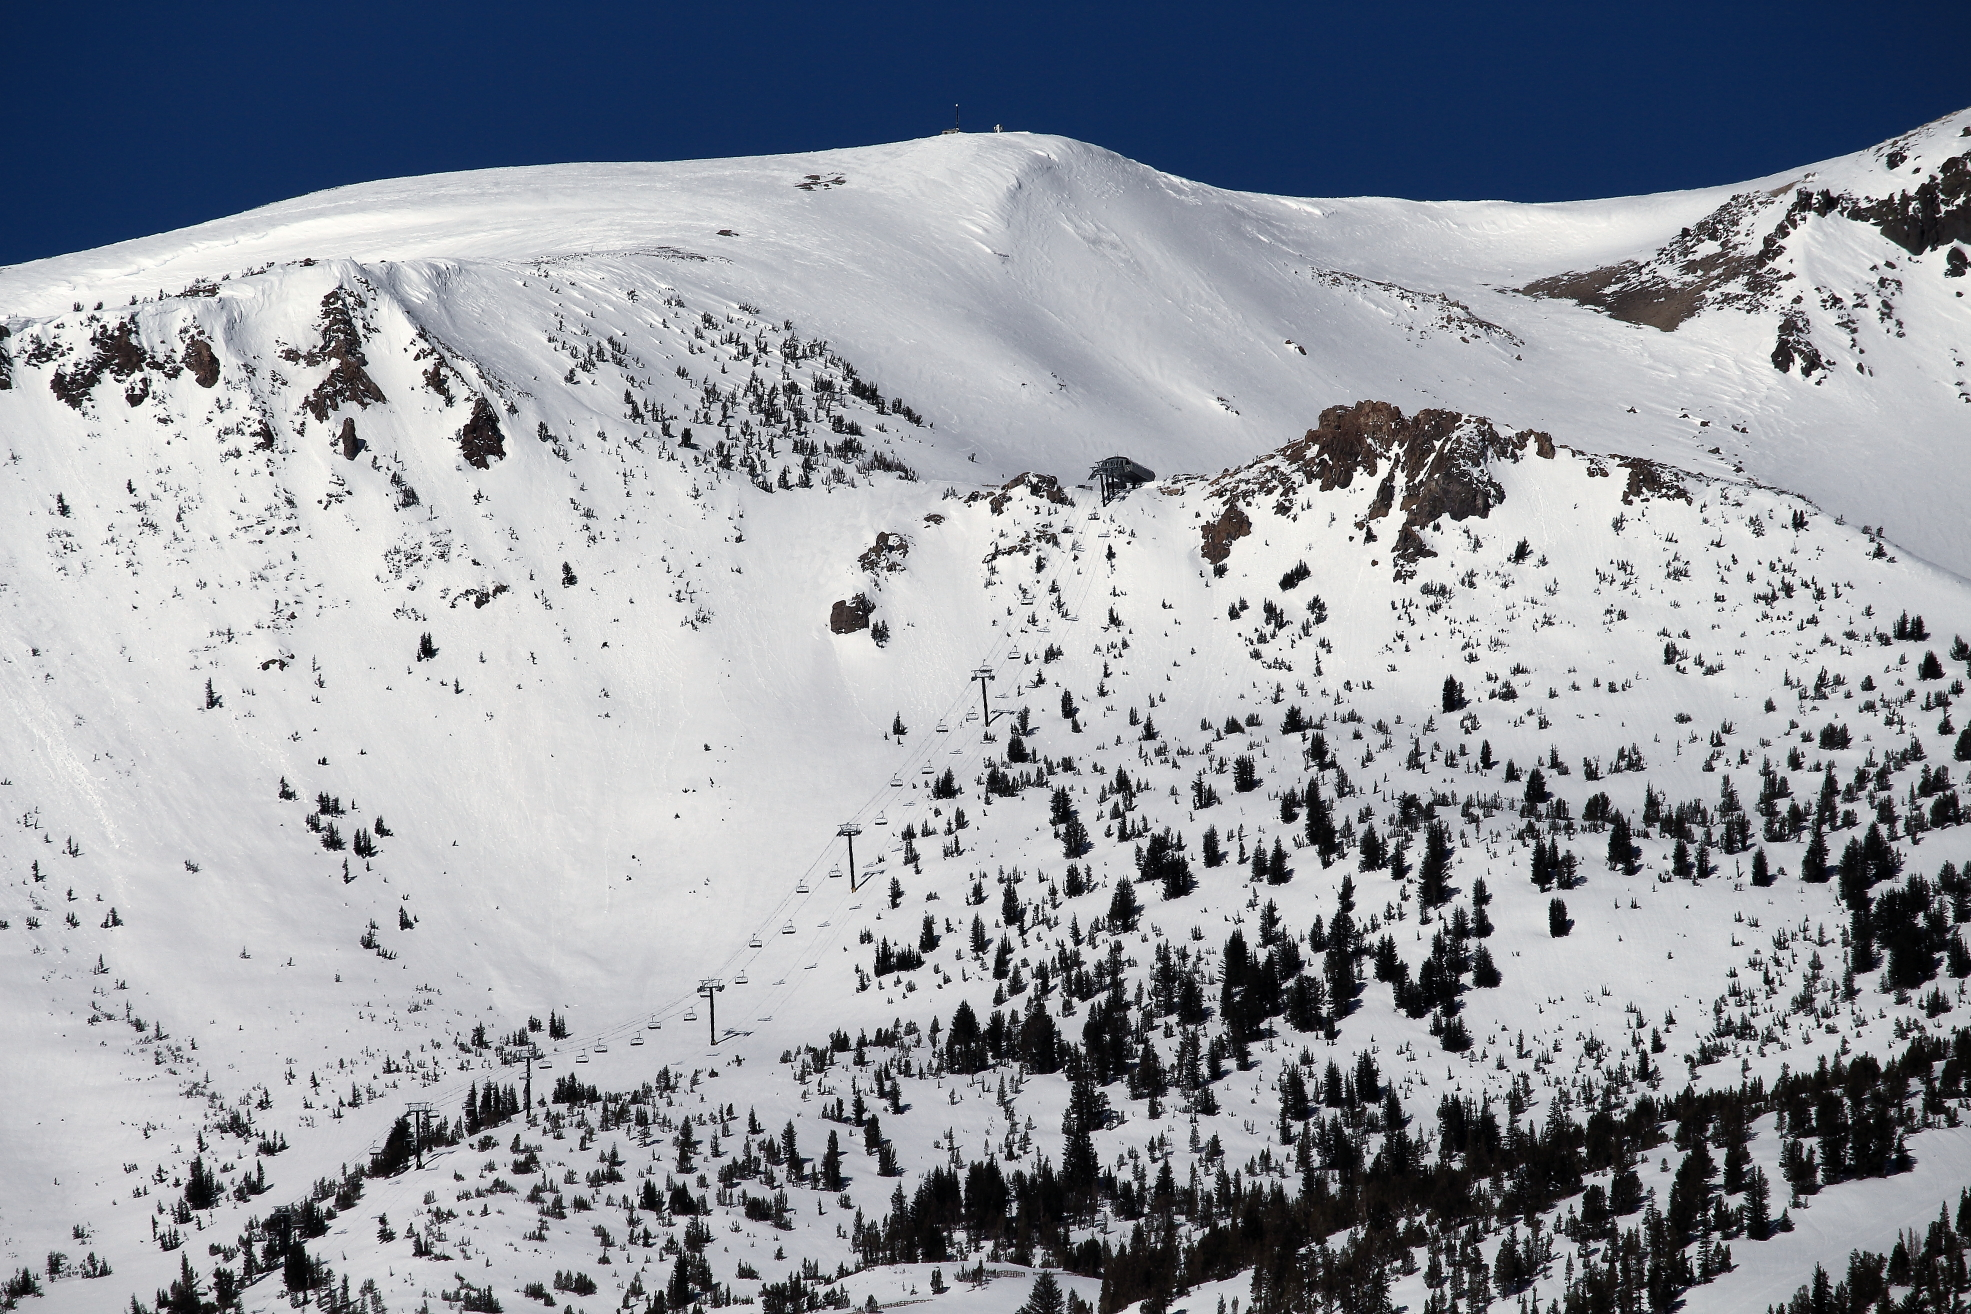 Chair 9 and Daves Run